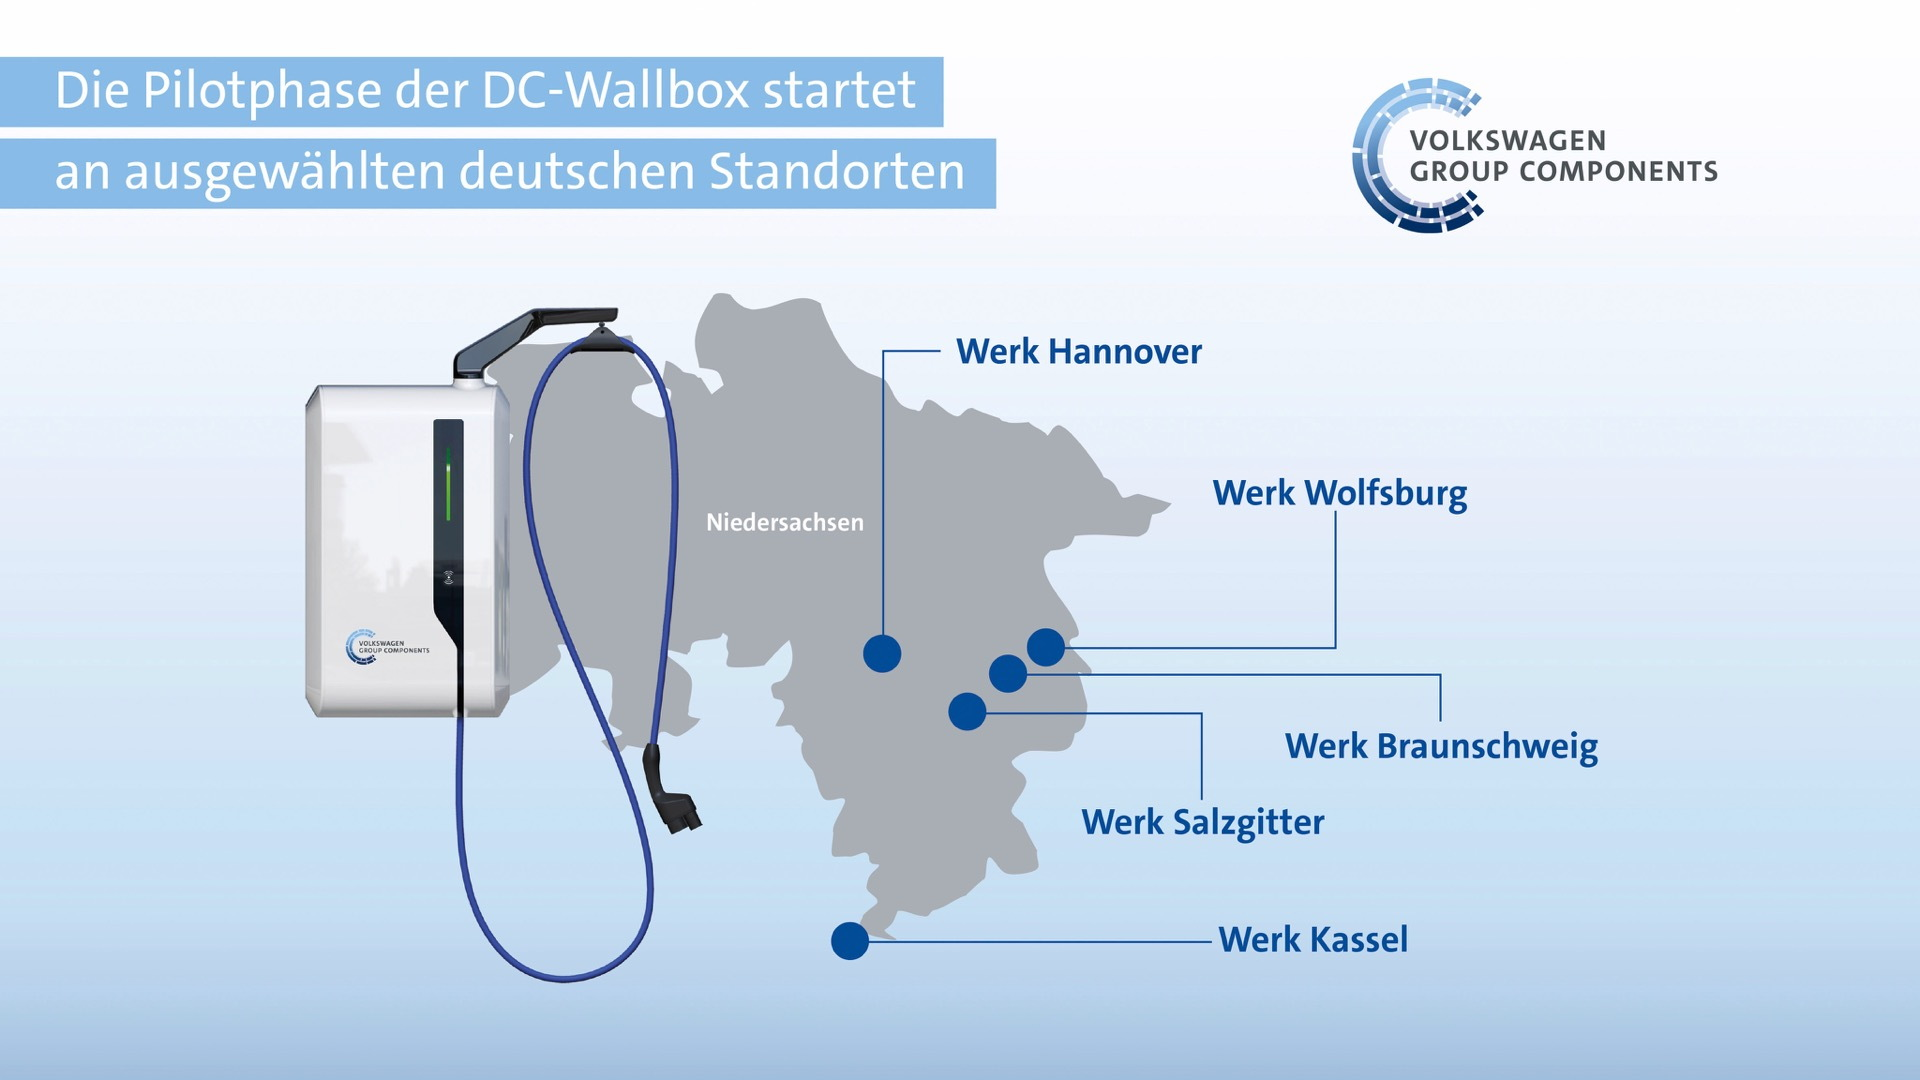 Volkswagen bi-directional charging pilot program